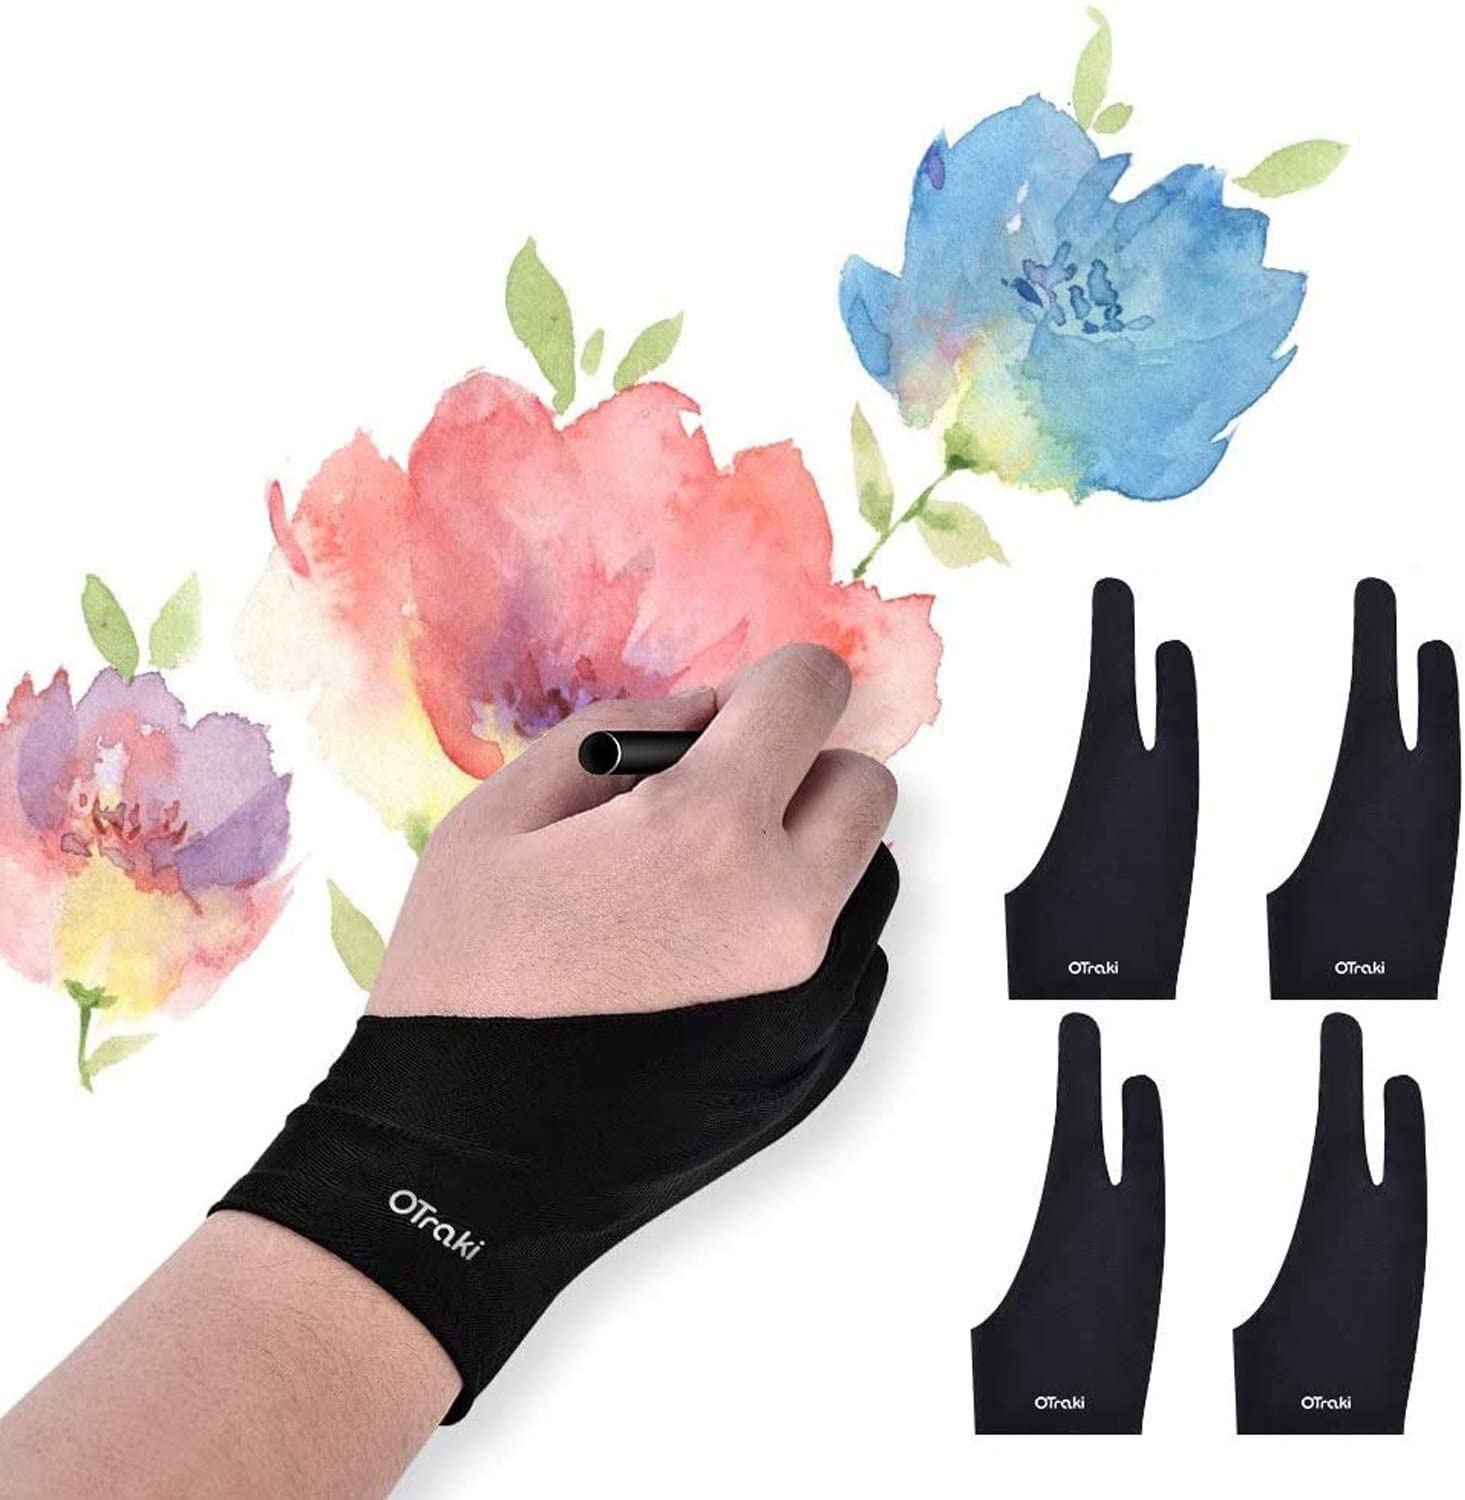 OTraki 4pcs Two Finger Artist Gloves Anti Smudge Graphic Drawing Glove for Tablet Pad Monitor Painting Paper Sketching Universal for Left and Right Hand 3.54 x 8.46 inch